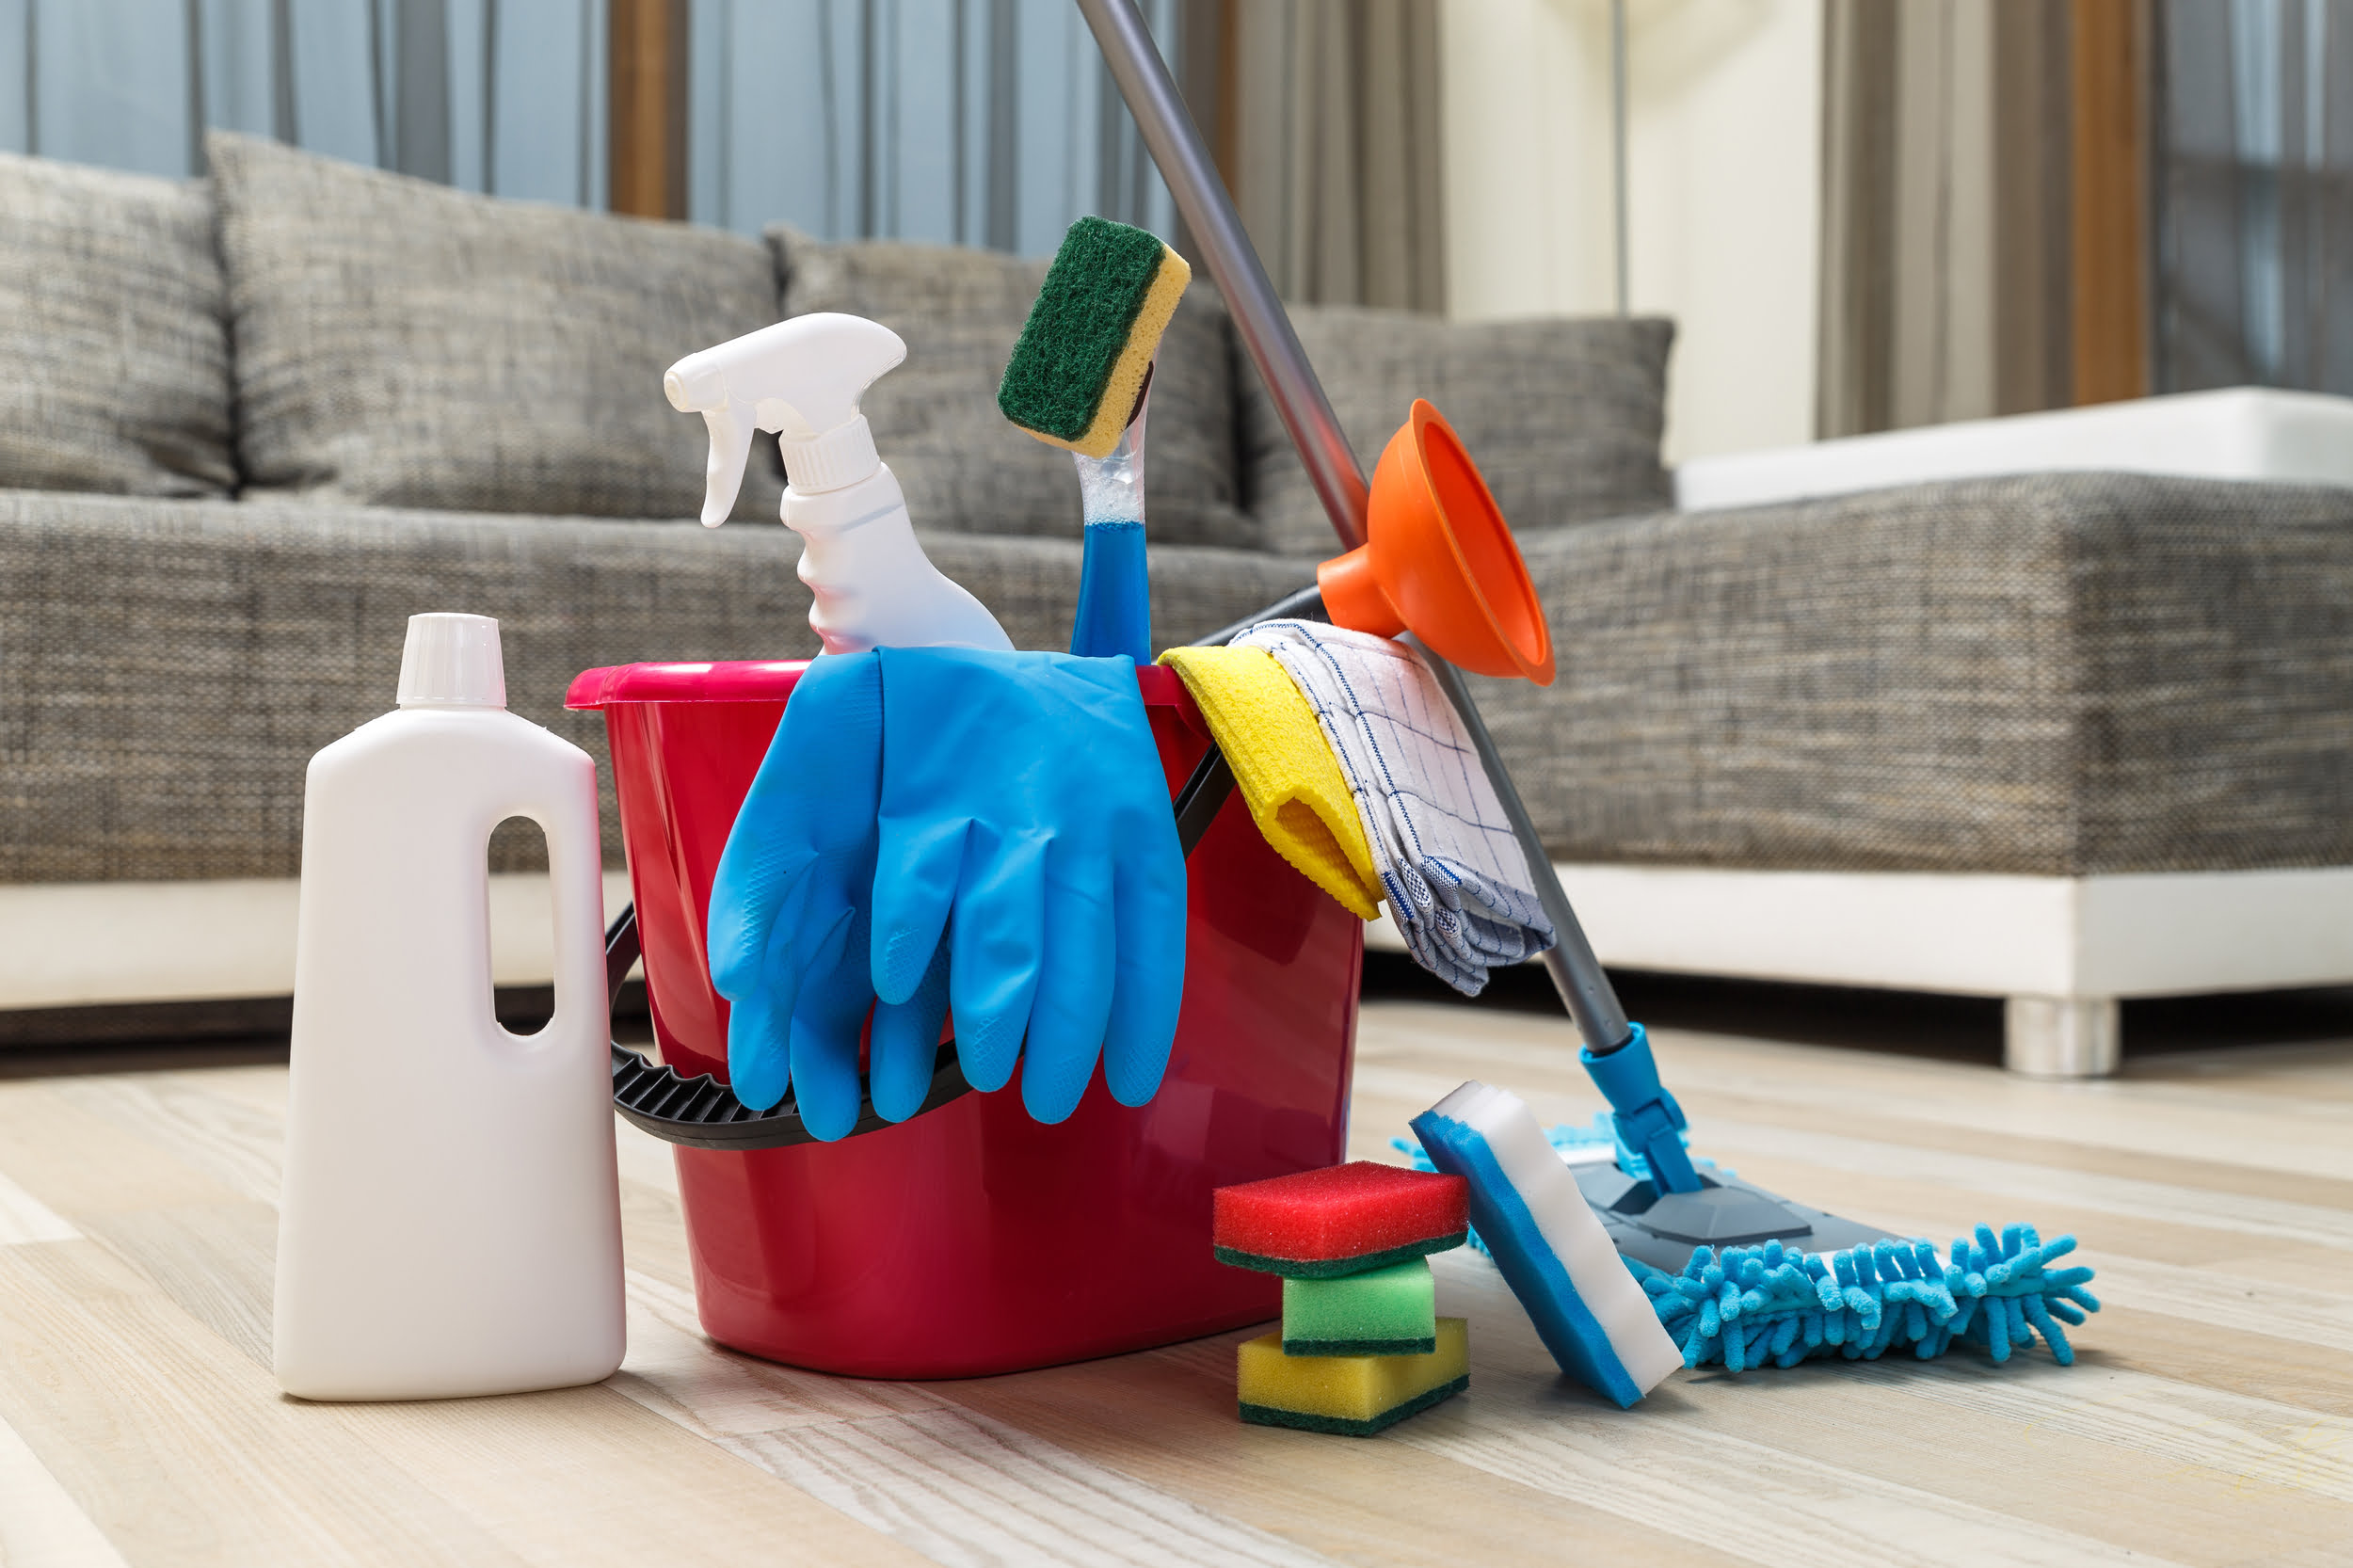 Cleaning supplies: bucket, mop, bottles, rubber gloves, sponges. Star Clean Ltd, Cleaning, Cleaners, Commercial Cleaners, Domestic Cleaners. Bath, Bristol